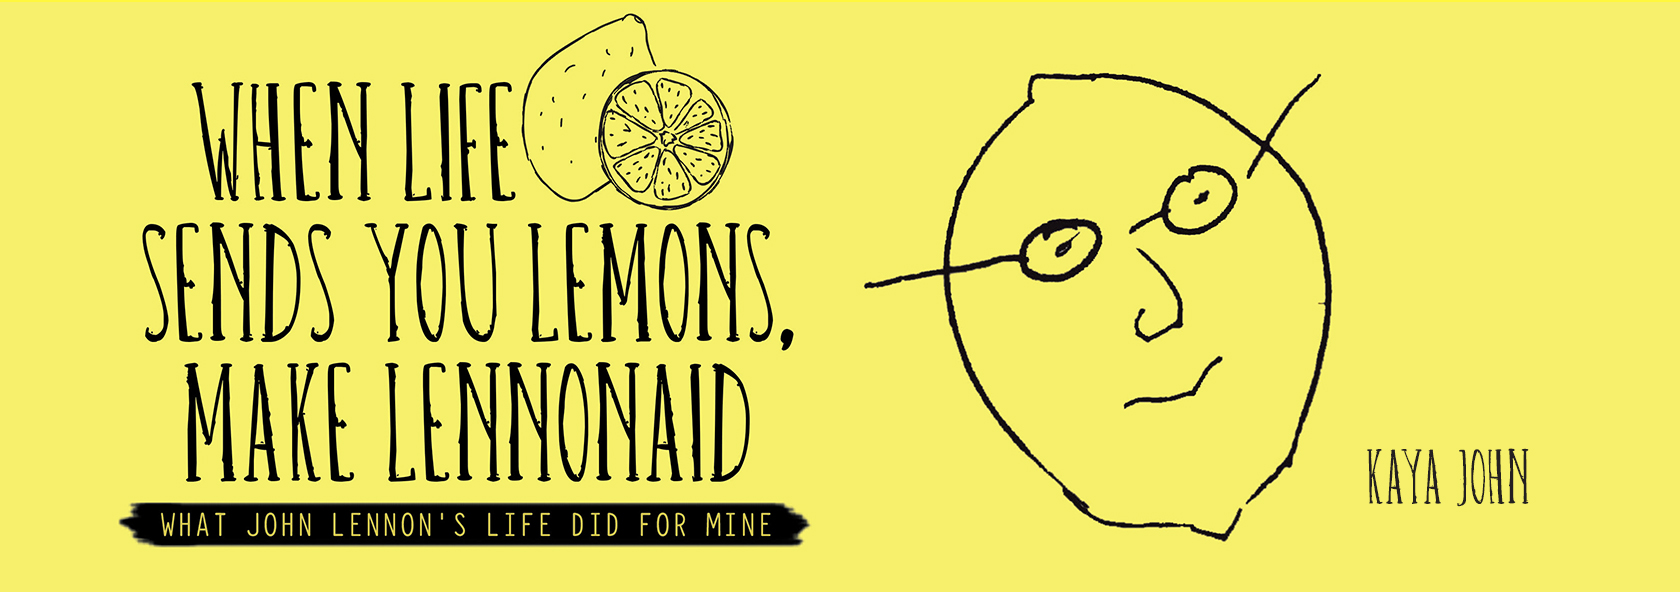 When Life Sends You Lemons, Make LENNONAID